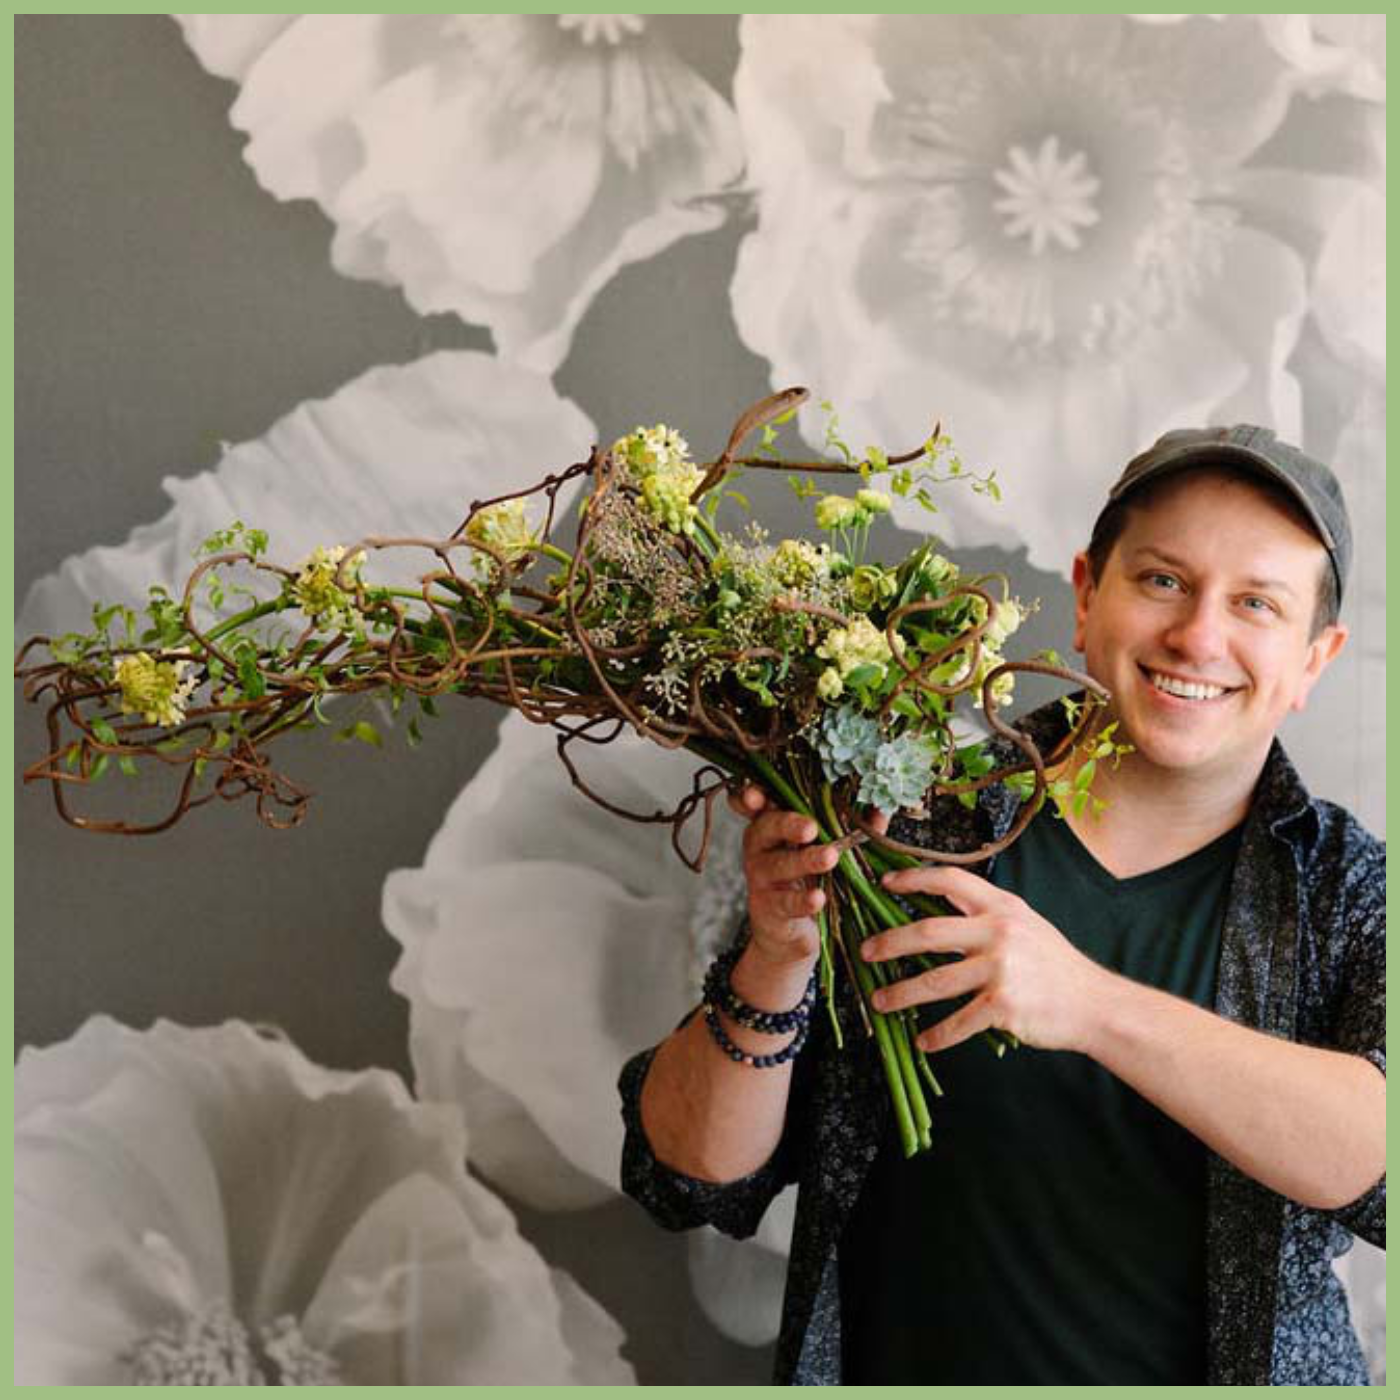 Guy holding a modern bouquet of flowers and smiling Shawn Michael Foley